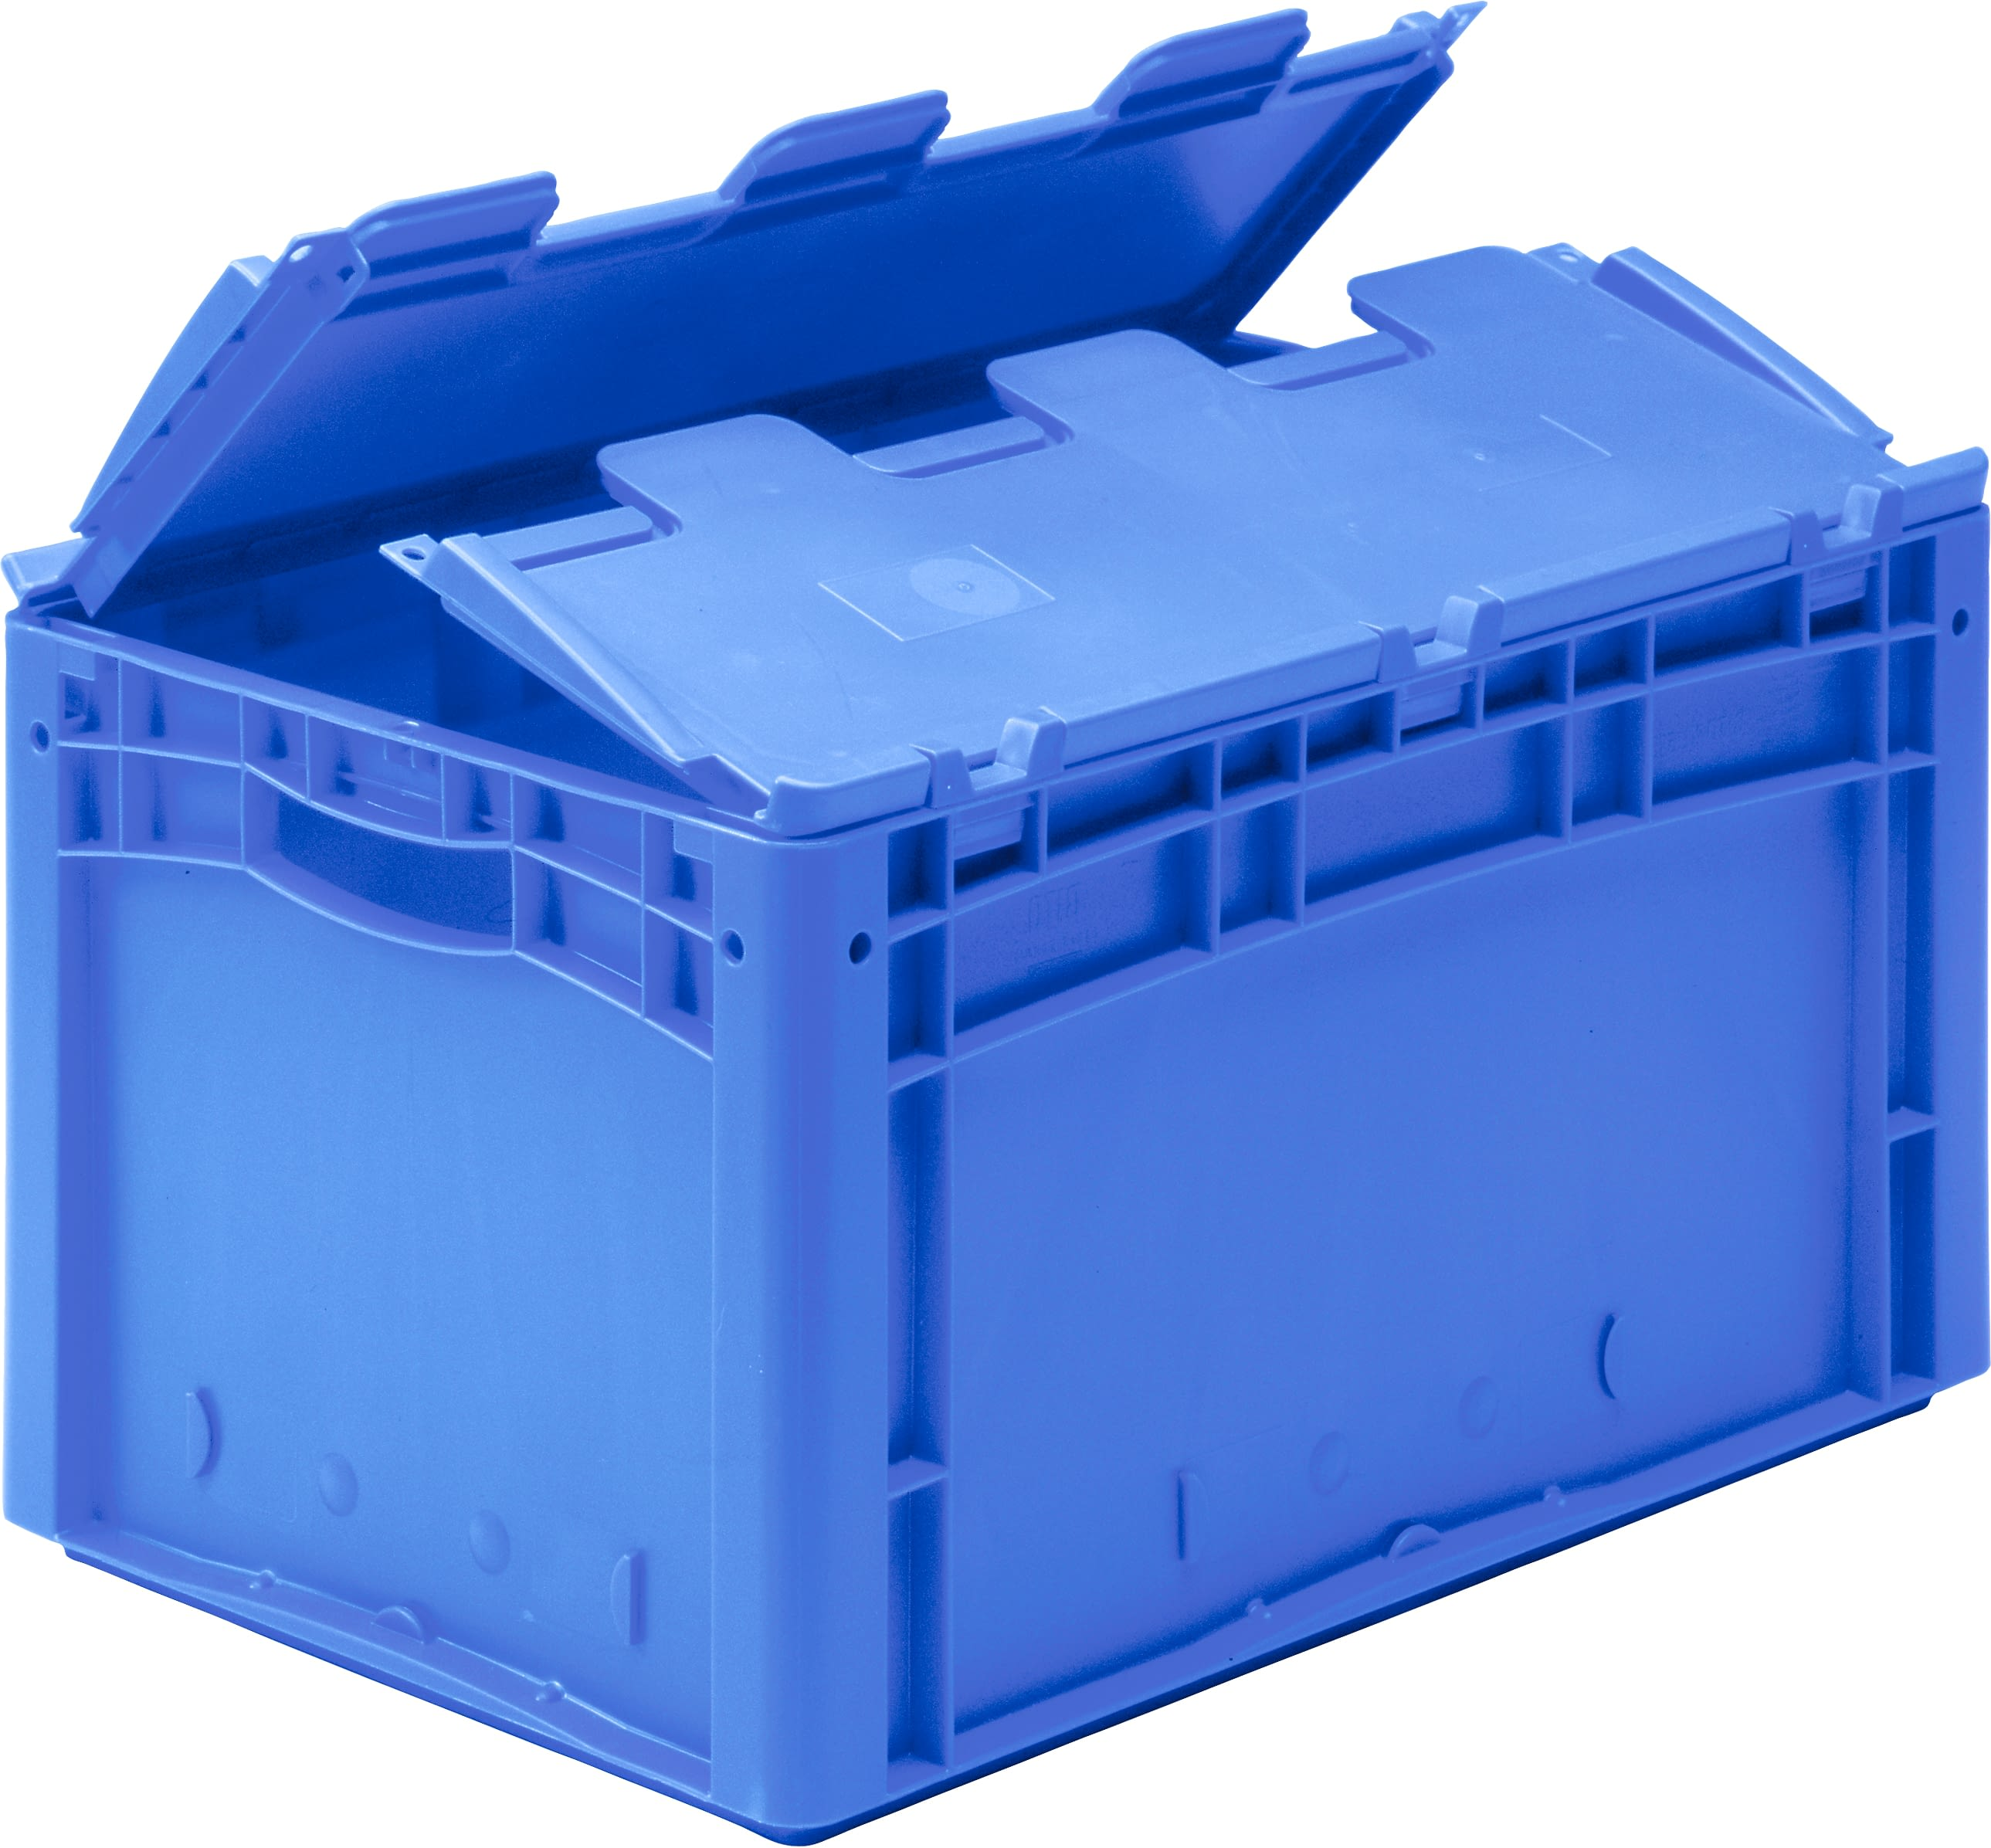 European size stacking containers XL, solid sides, blue, 43-30406